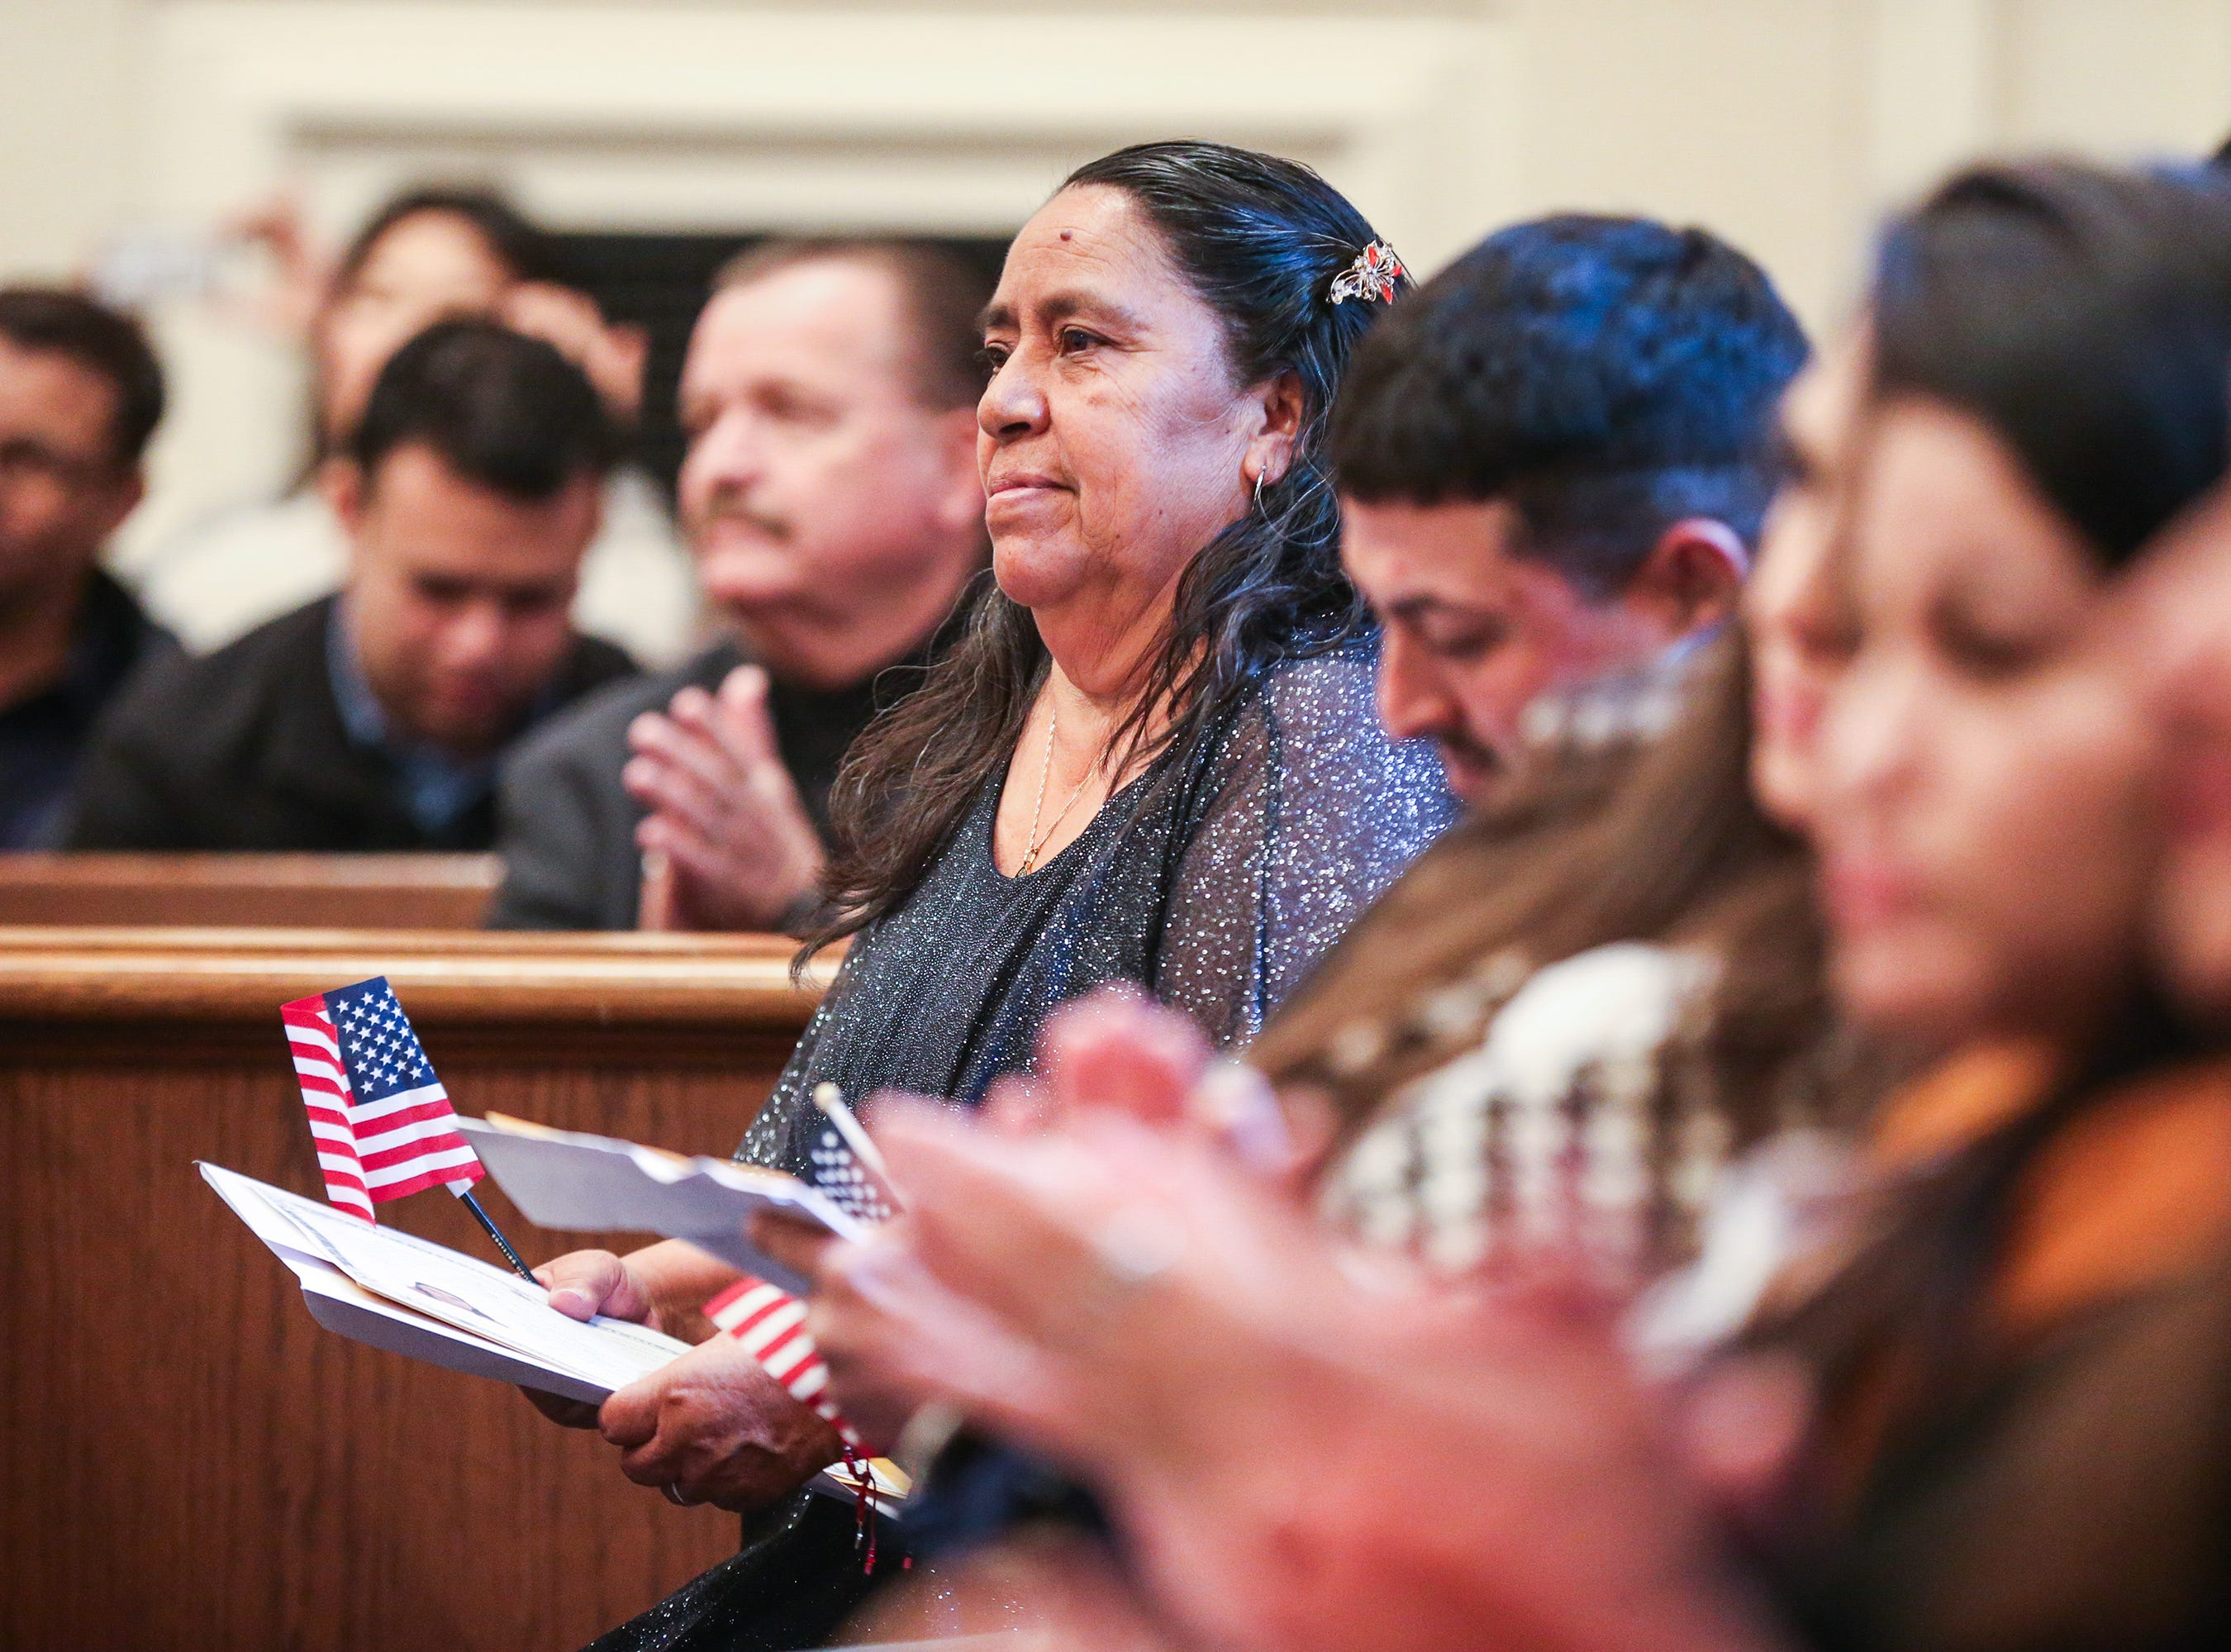 Applicants applaud at the end of the naturalization ceremony Wednesday, Jan. 8, 2019, at the O.C. Fisher Federal Building.